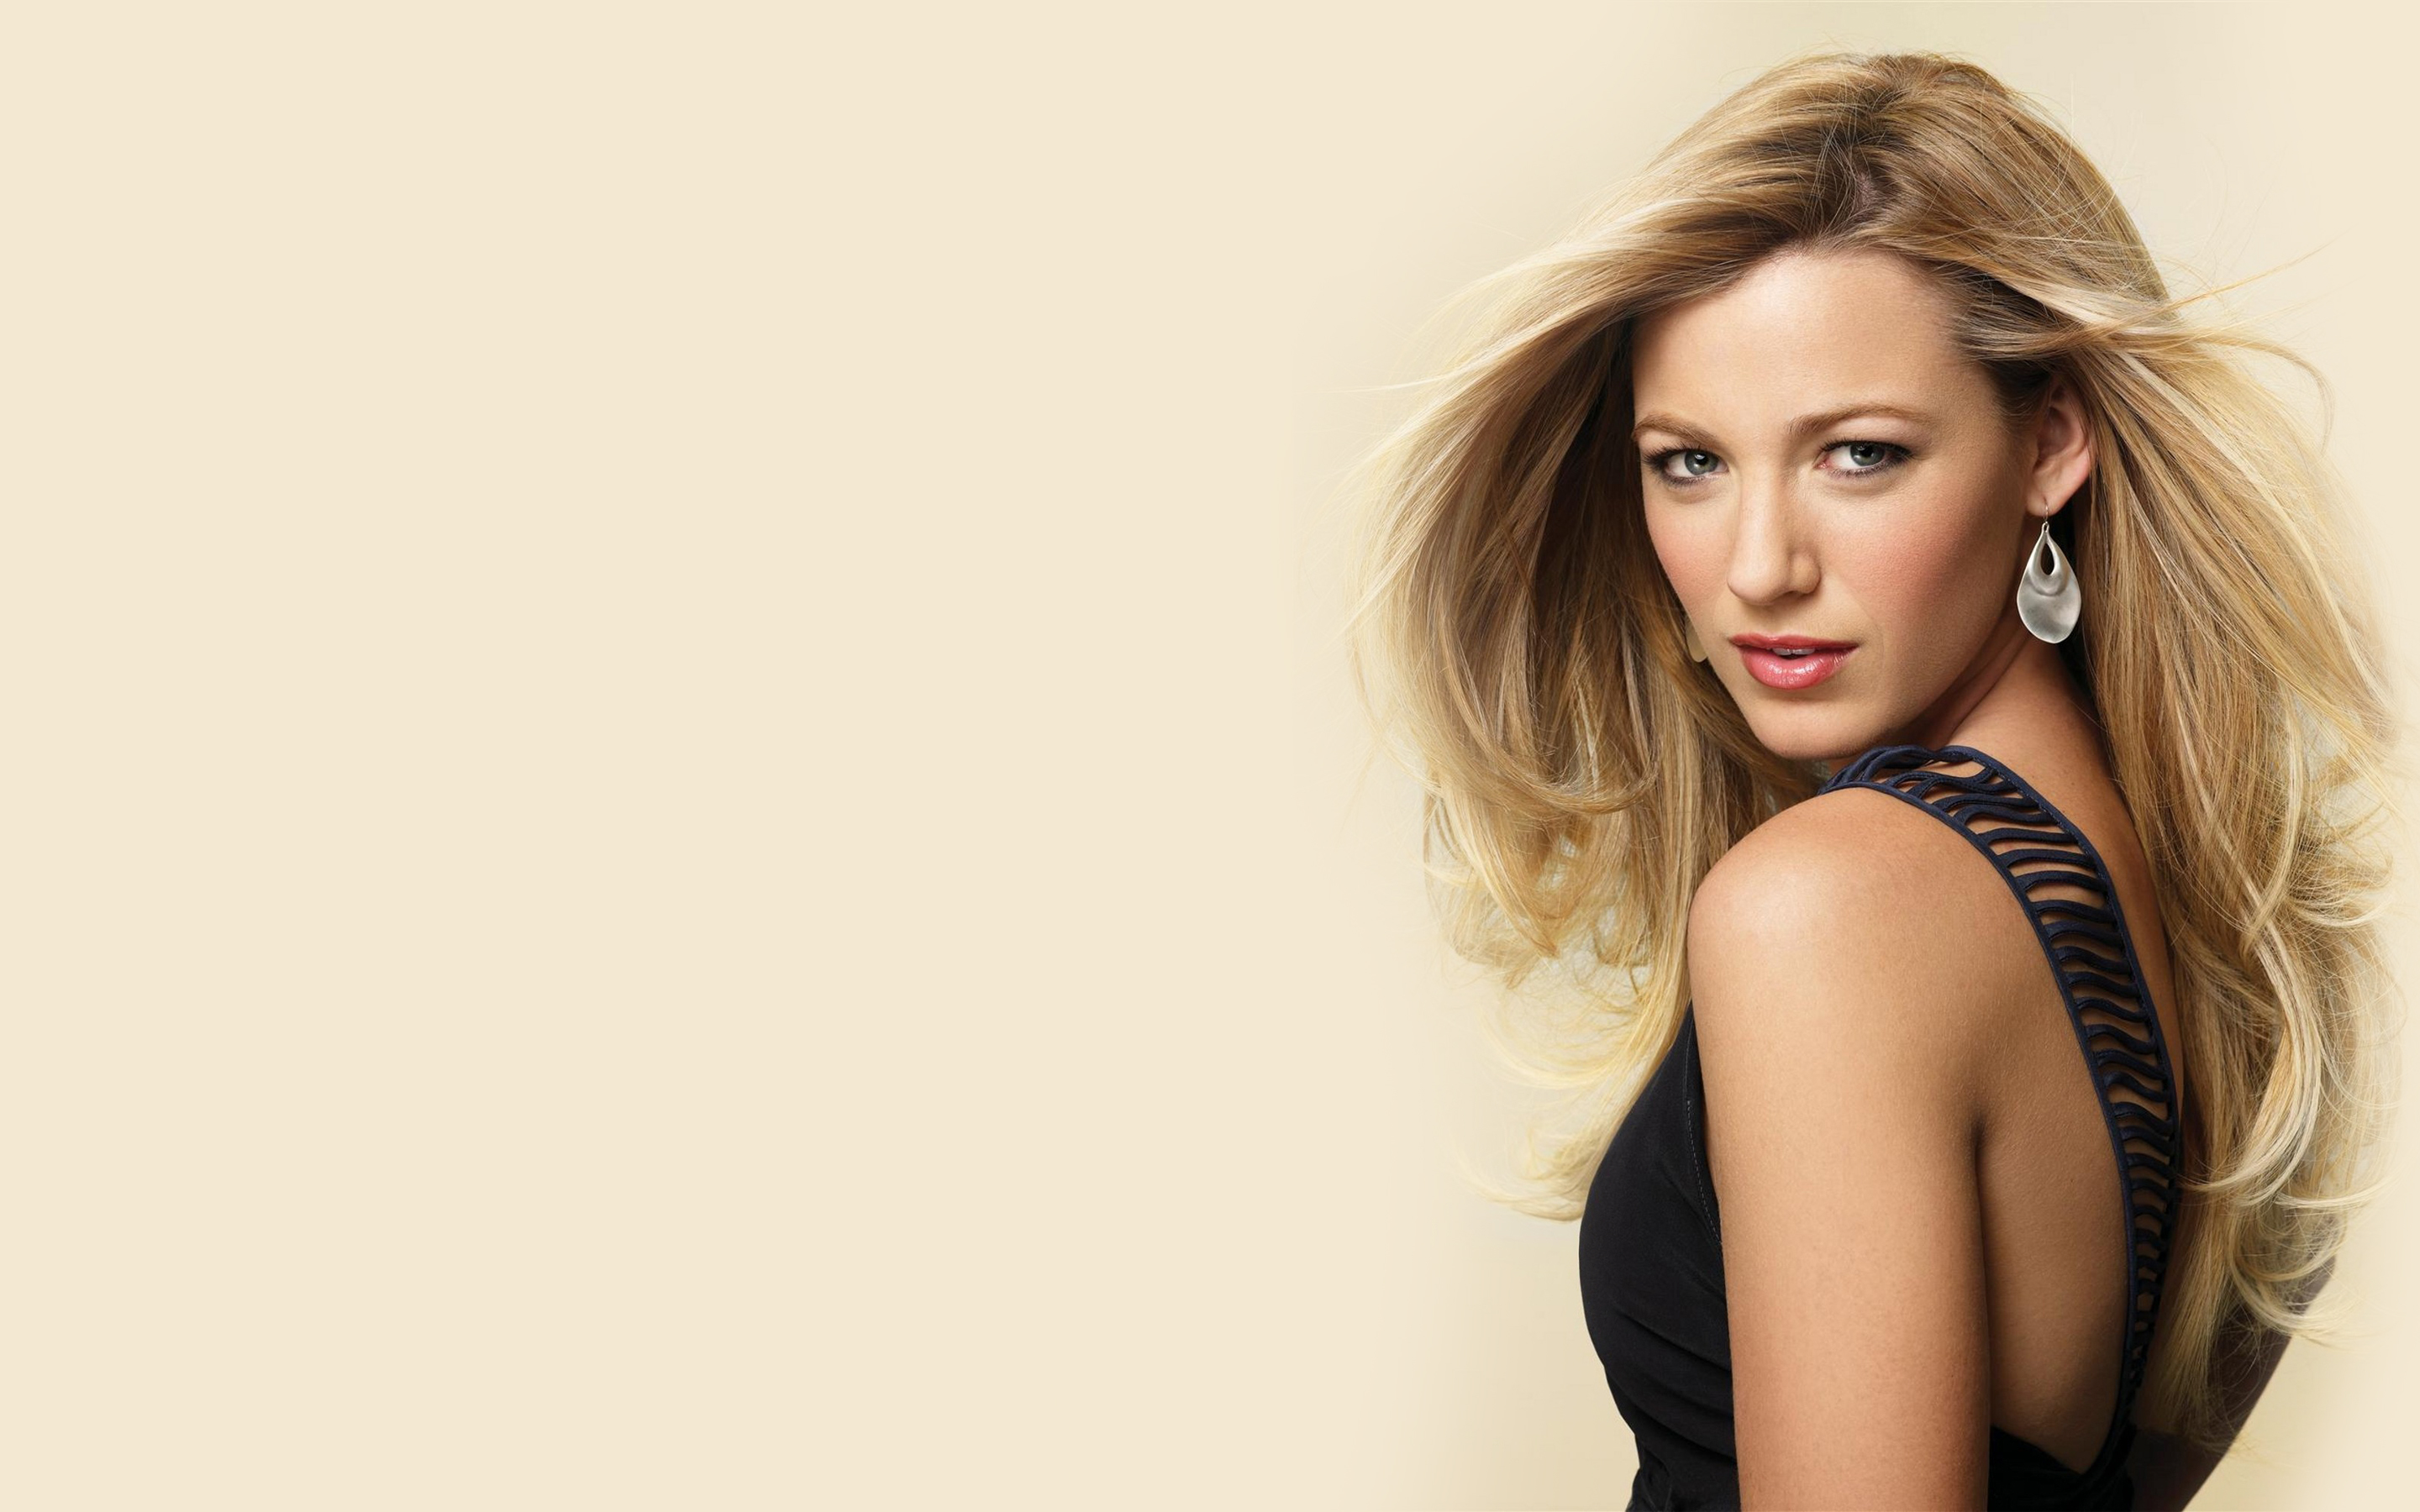 Blake Lively Wallpapers Images Photos Pictures Backgrounds Blake Lively Makeup